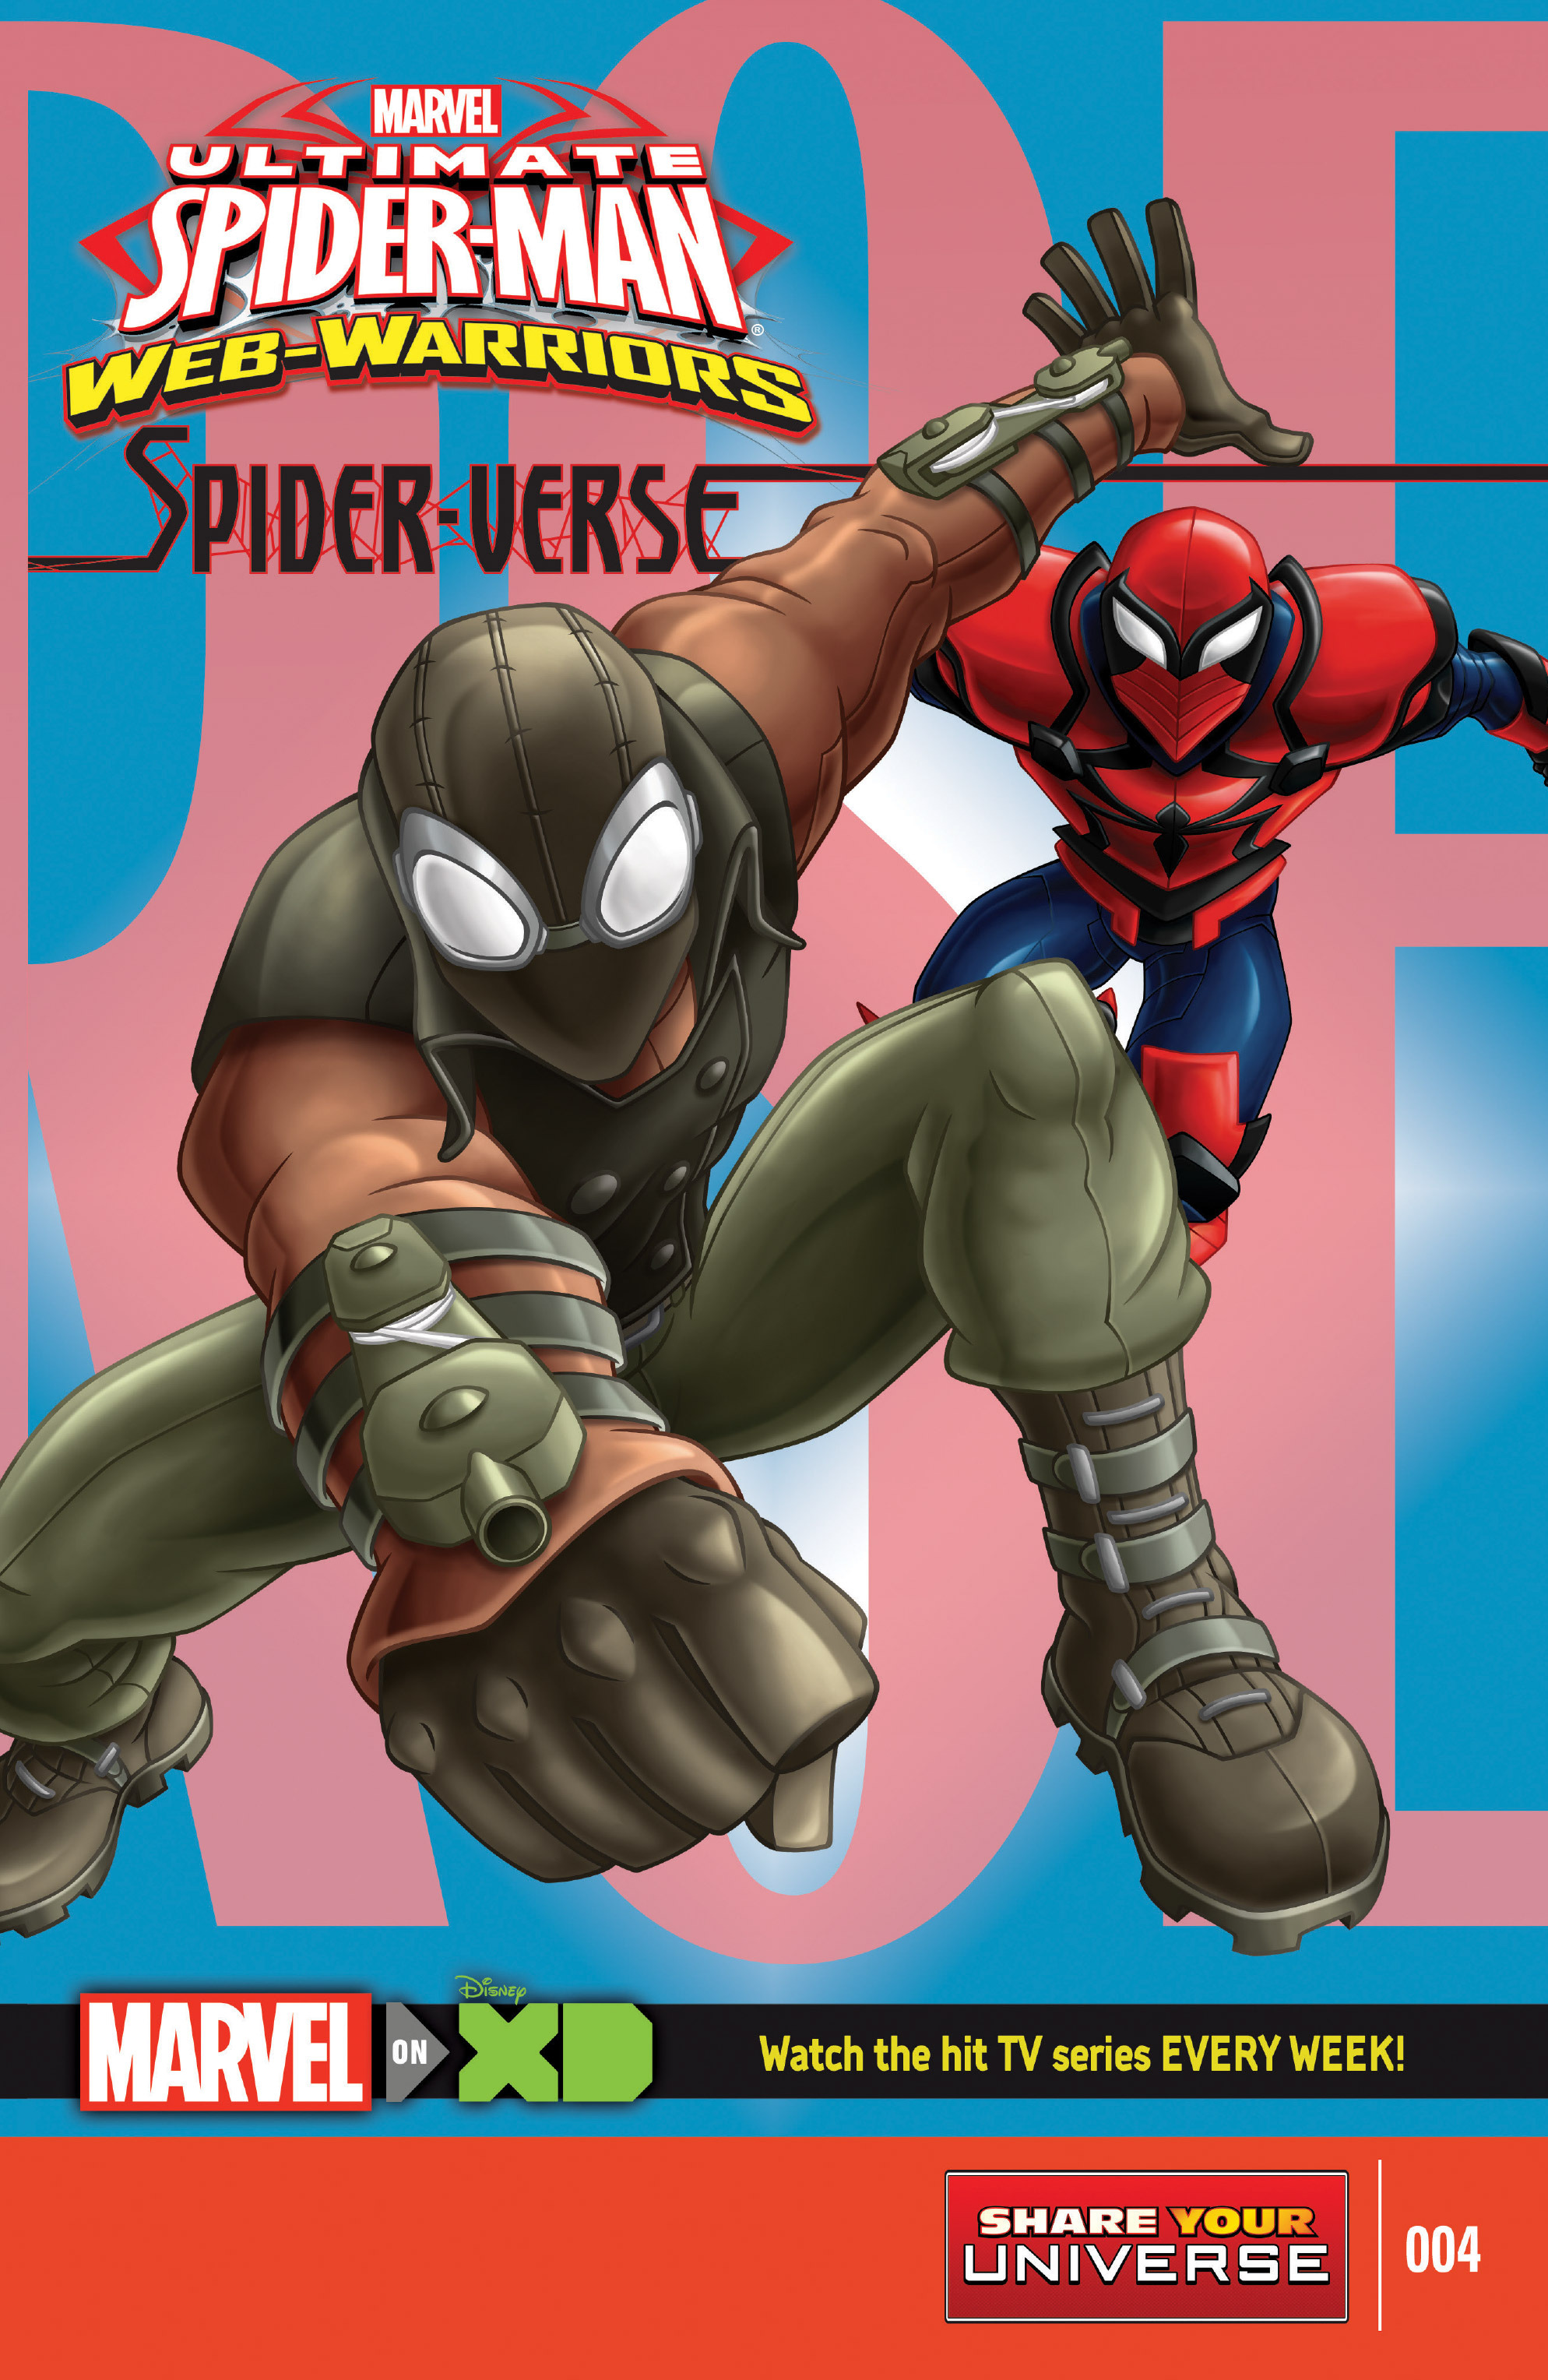 Marvel Universe: Ultimate Spider-Man: Web-Warriors - Spider-Verse ...